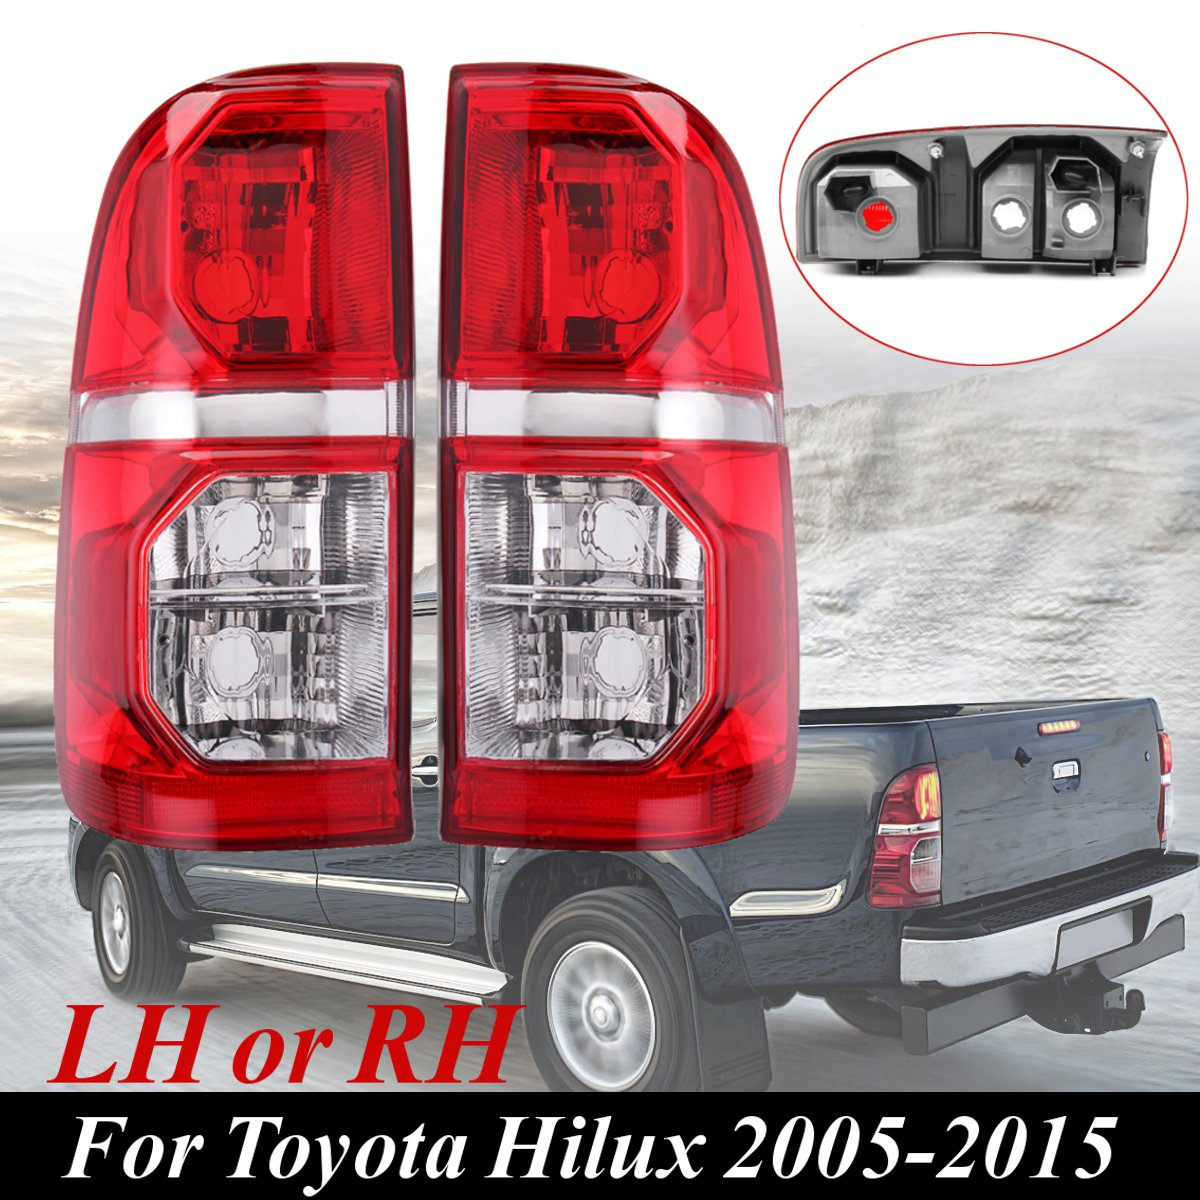 Red Left/Right Car Rear Side Tail Light Brake Lamp Light for Toyota Hilux 2005 2006 2007 2008 2009 2010-2015 LH/RH red left right car rear side tail light brake lamp light for toyota hilux 2005 2006 2007 2008 2009 2010 2015 lh rh